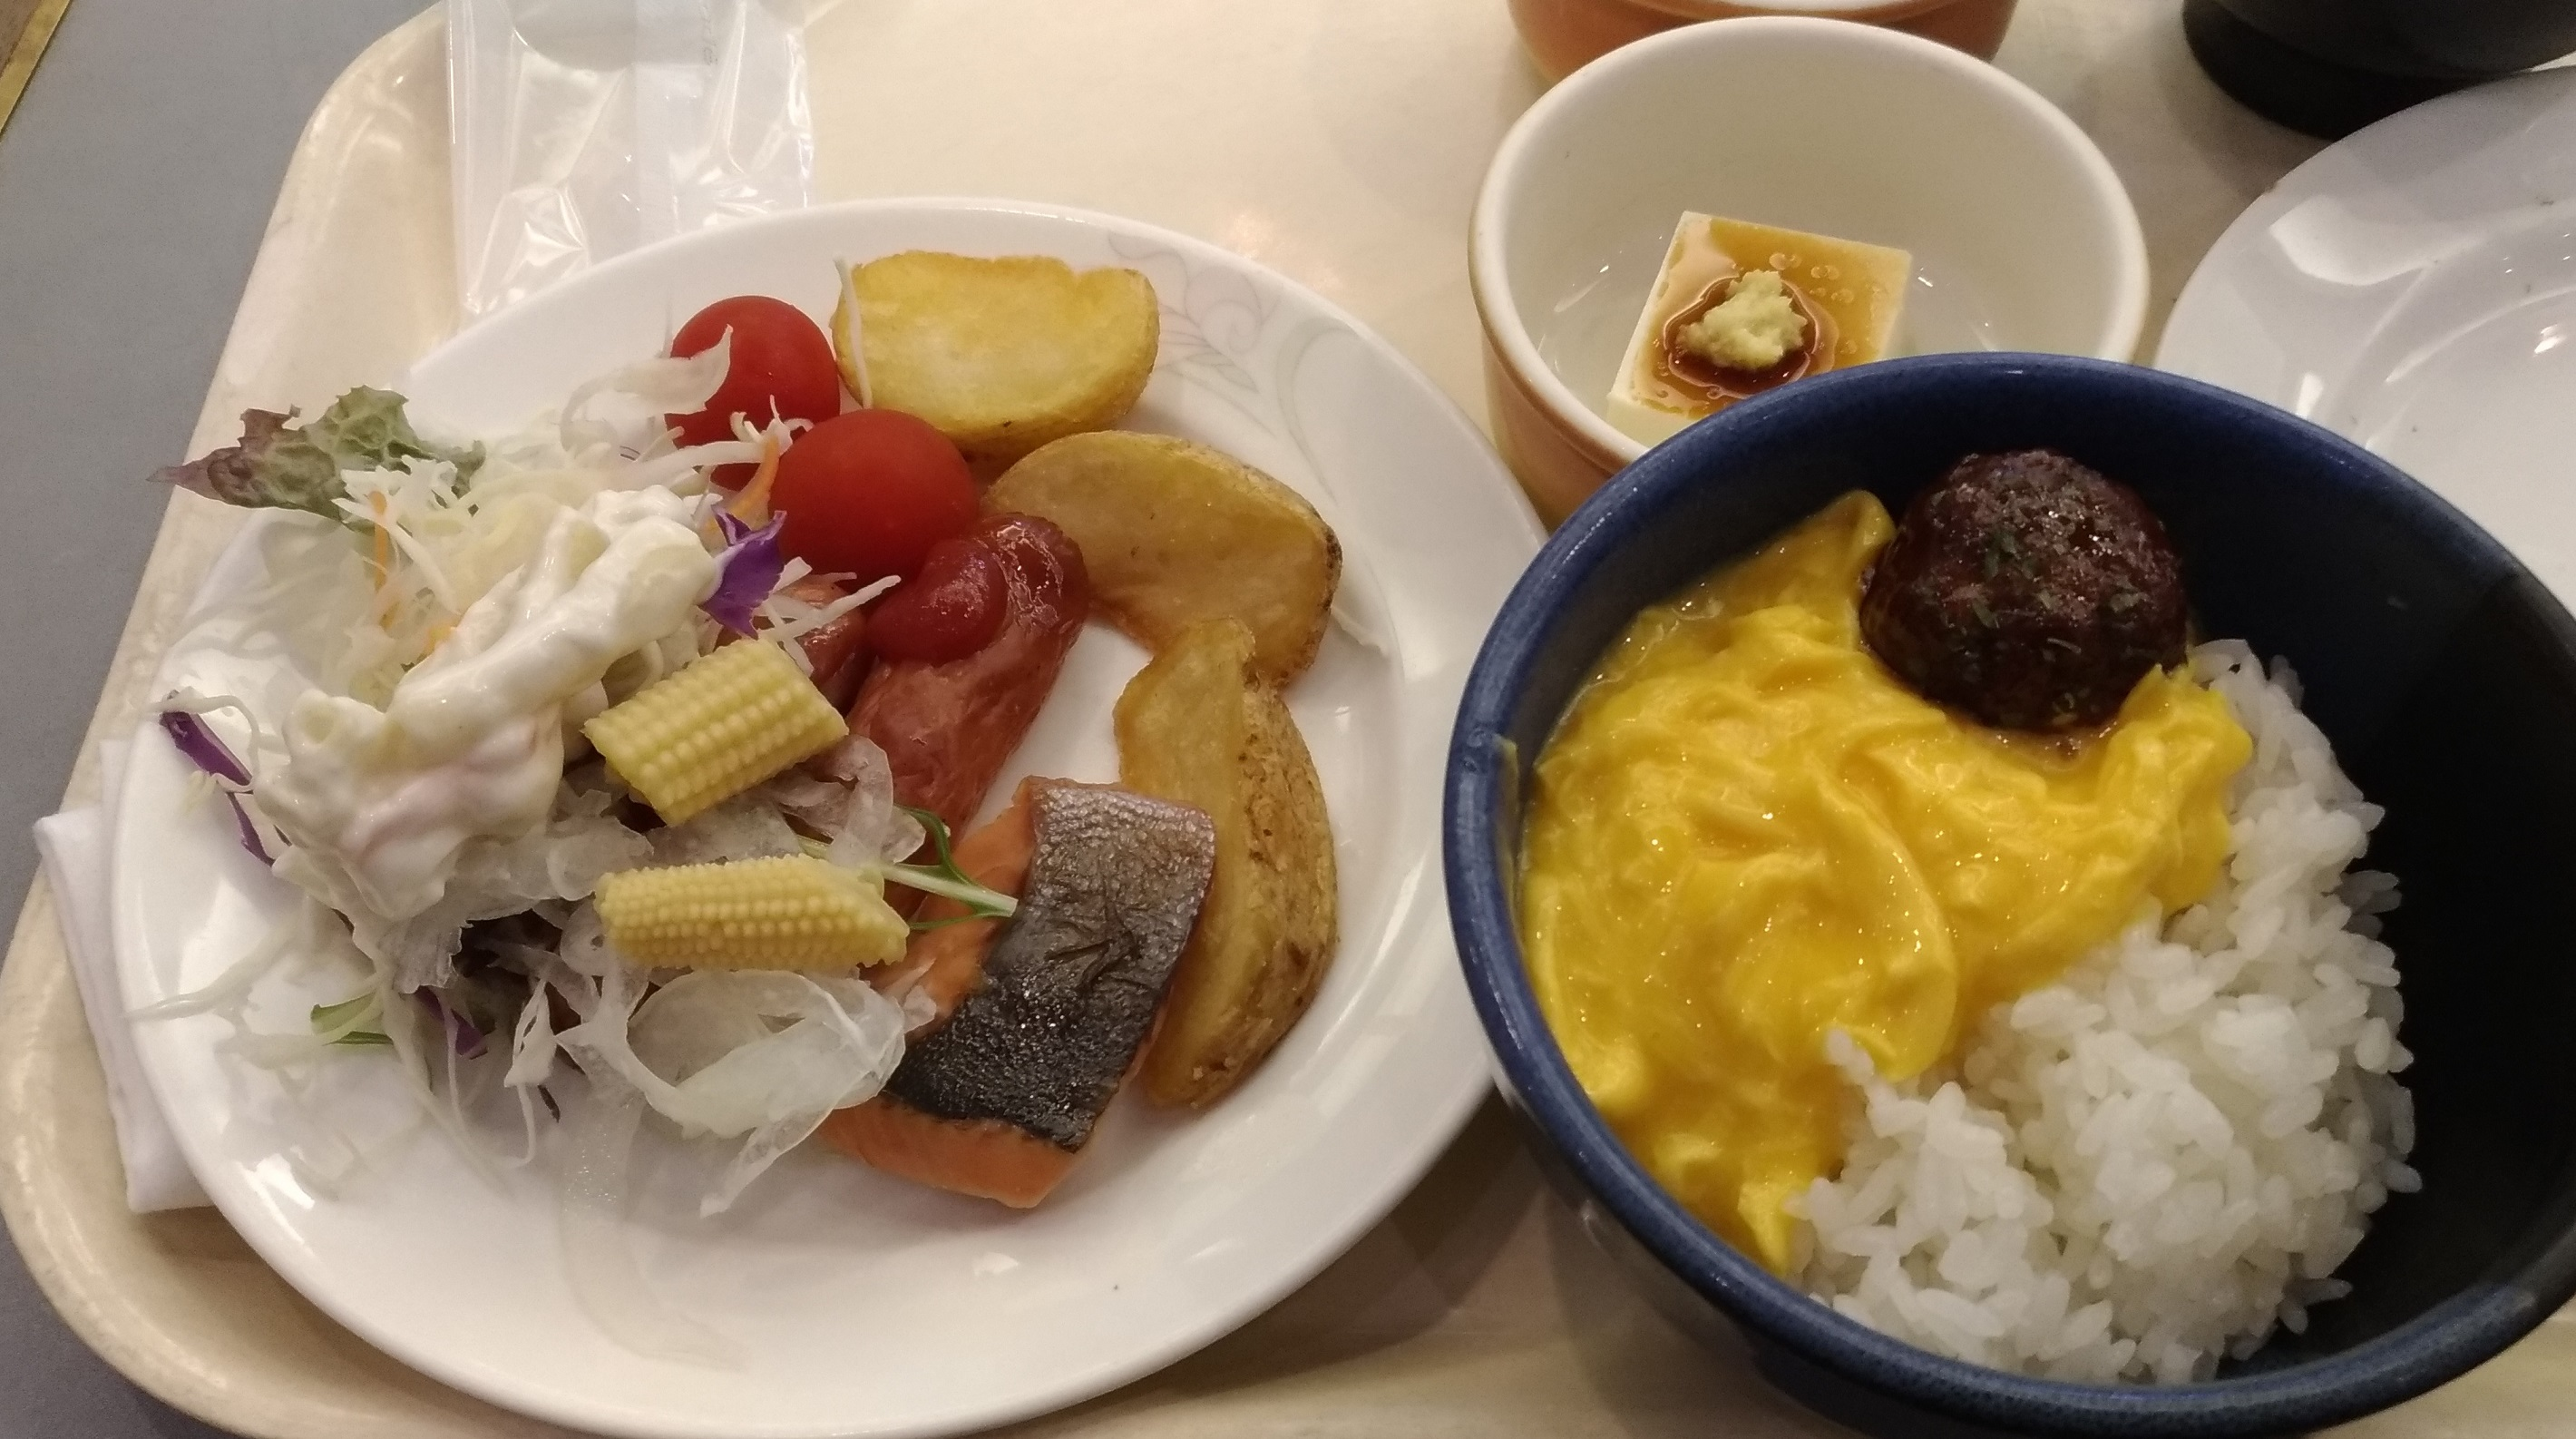 osaka_hotel_morning_buffet_ncb_4.jpg